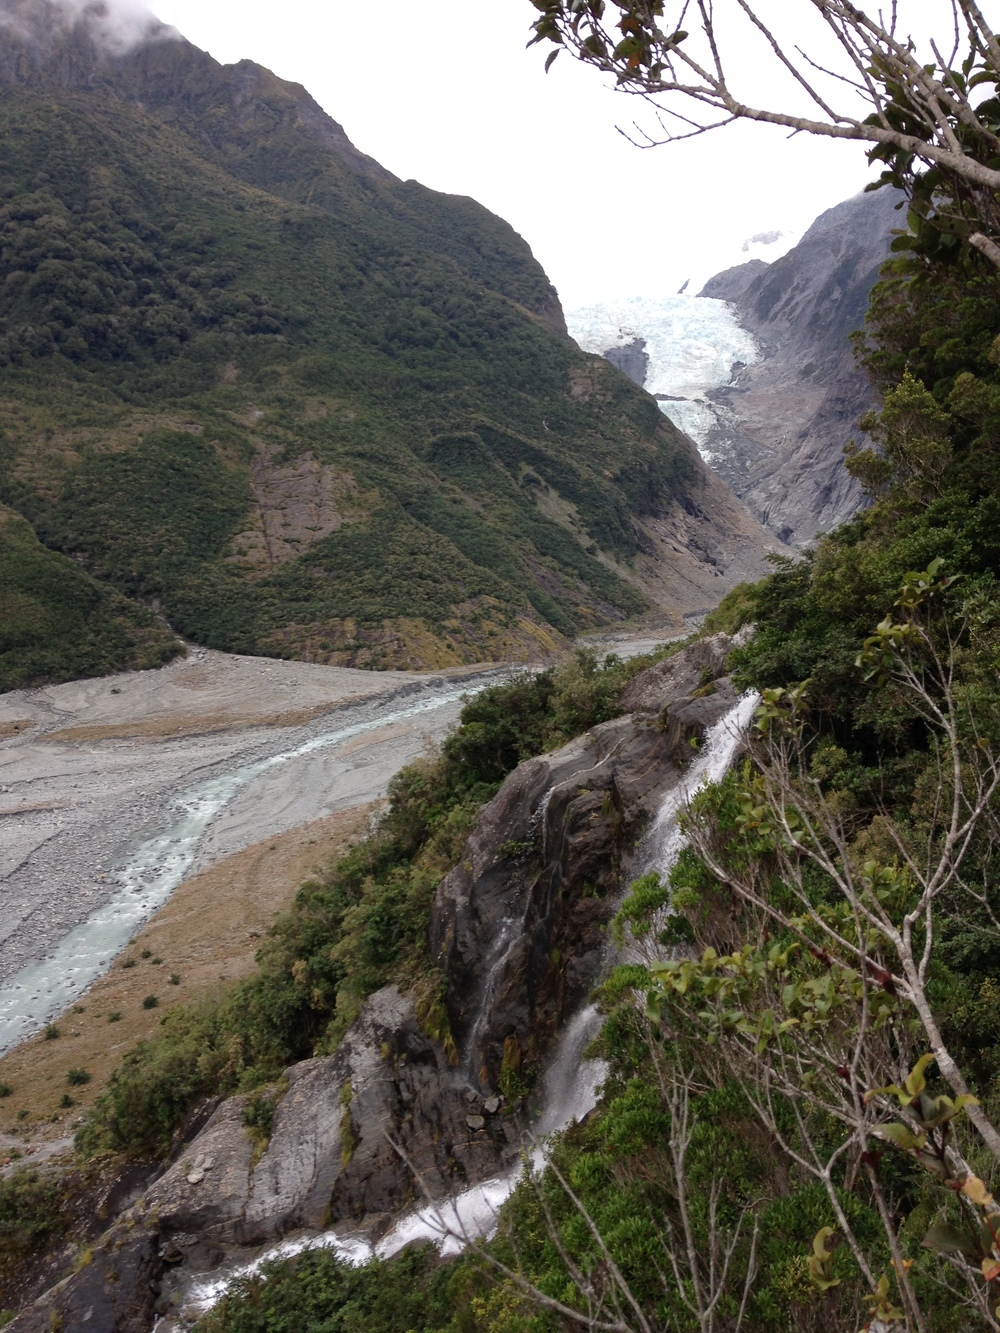 By the waterfall on the Franz Joseph side mission, looking at the glacier.